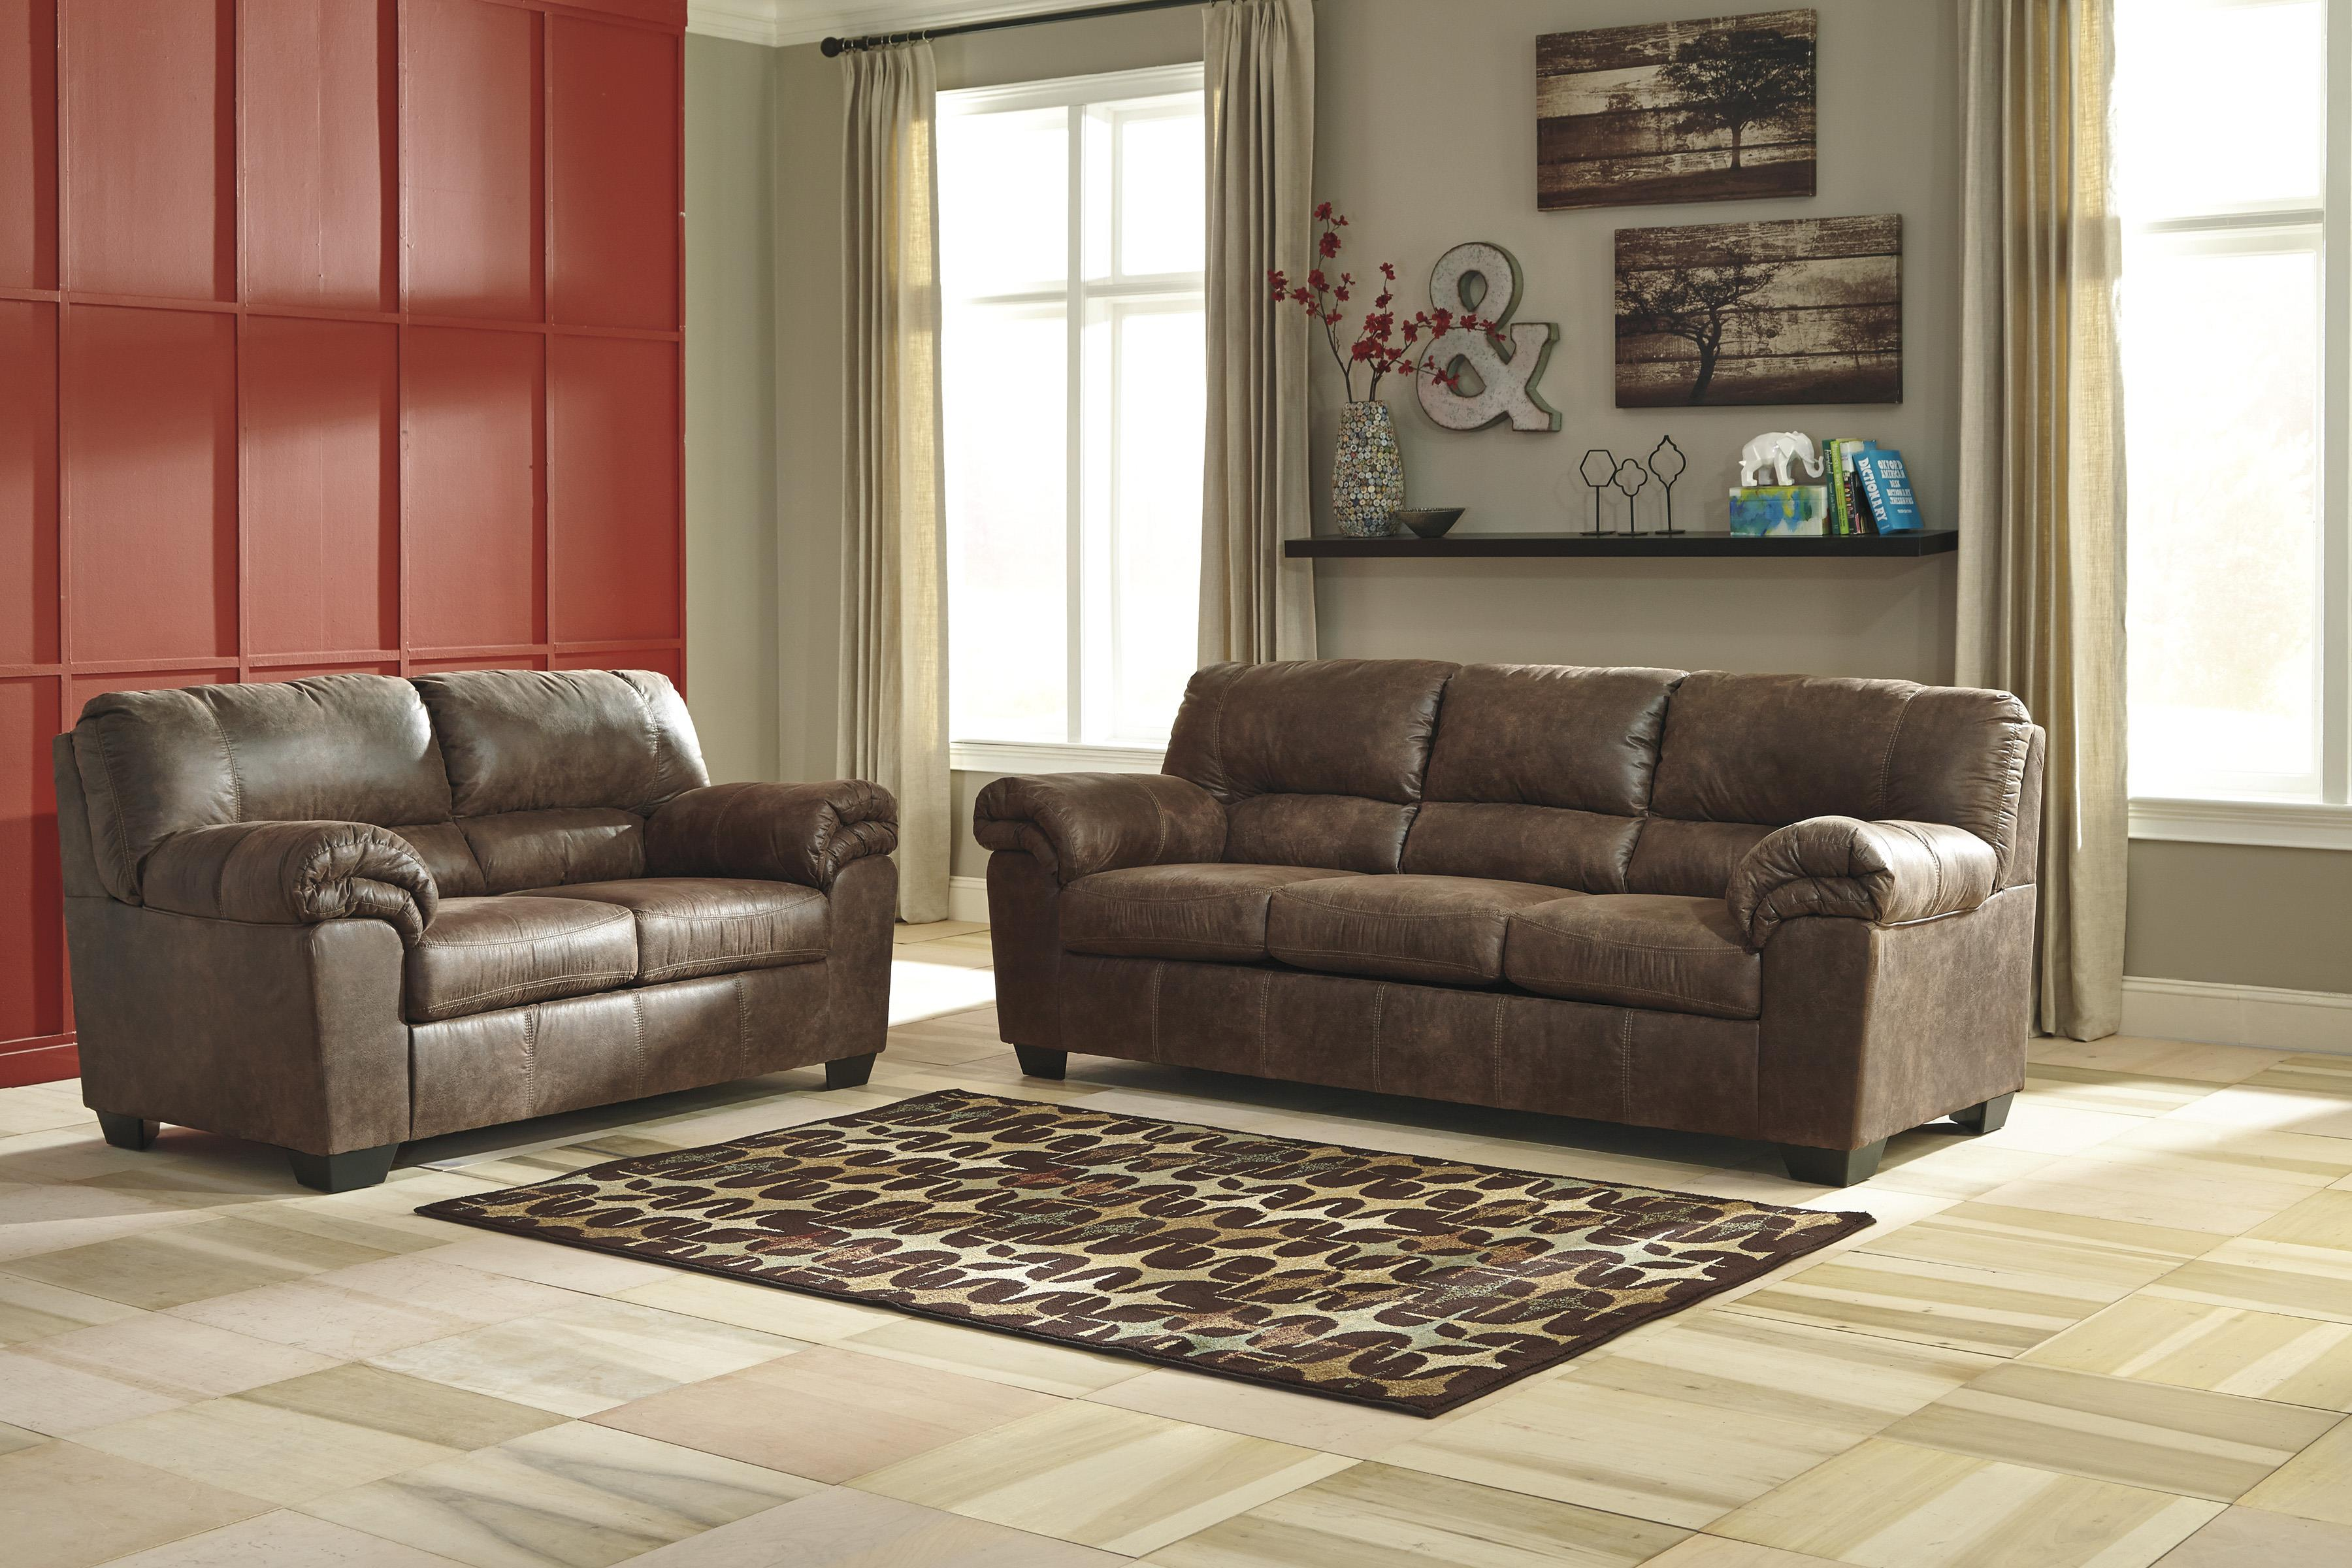 Signature Design By Ashley Bladen Stationary Living Room Group Del Sol Furniture Stationary